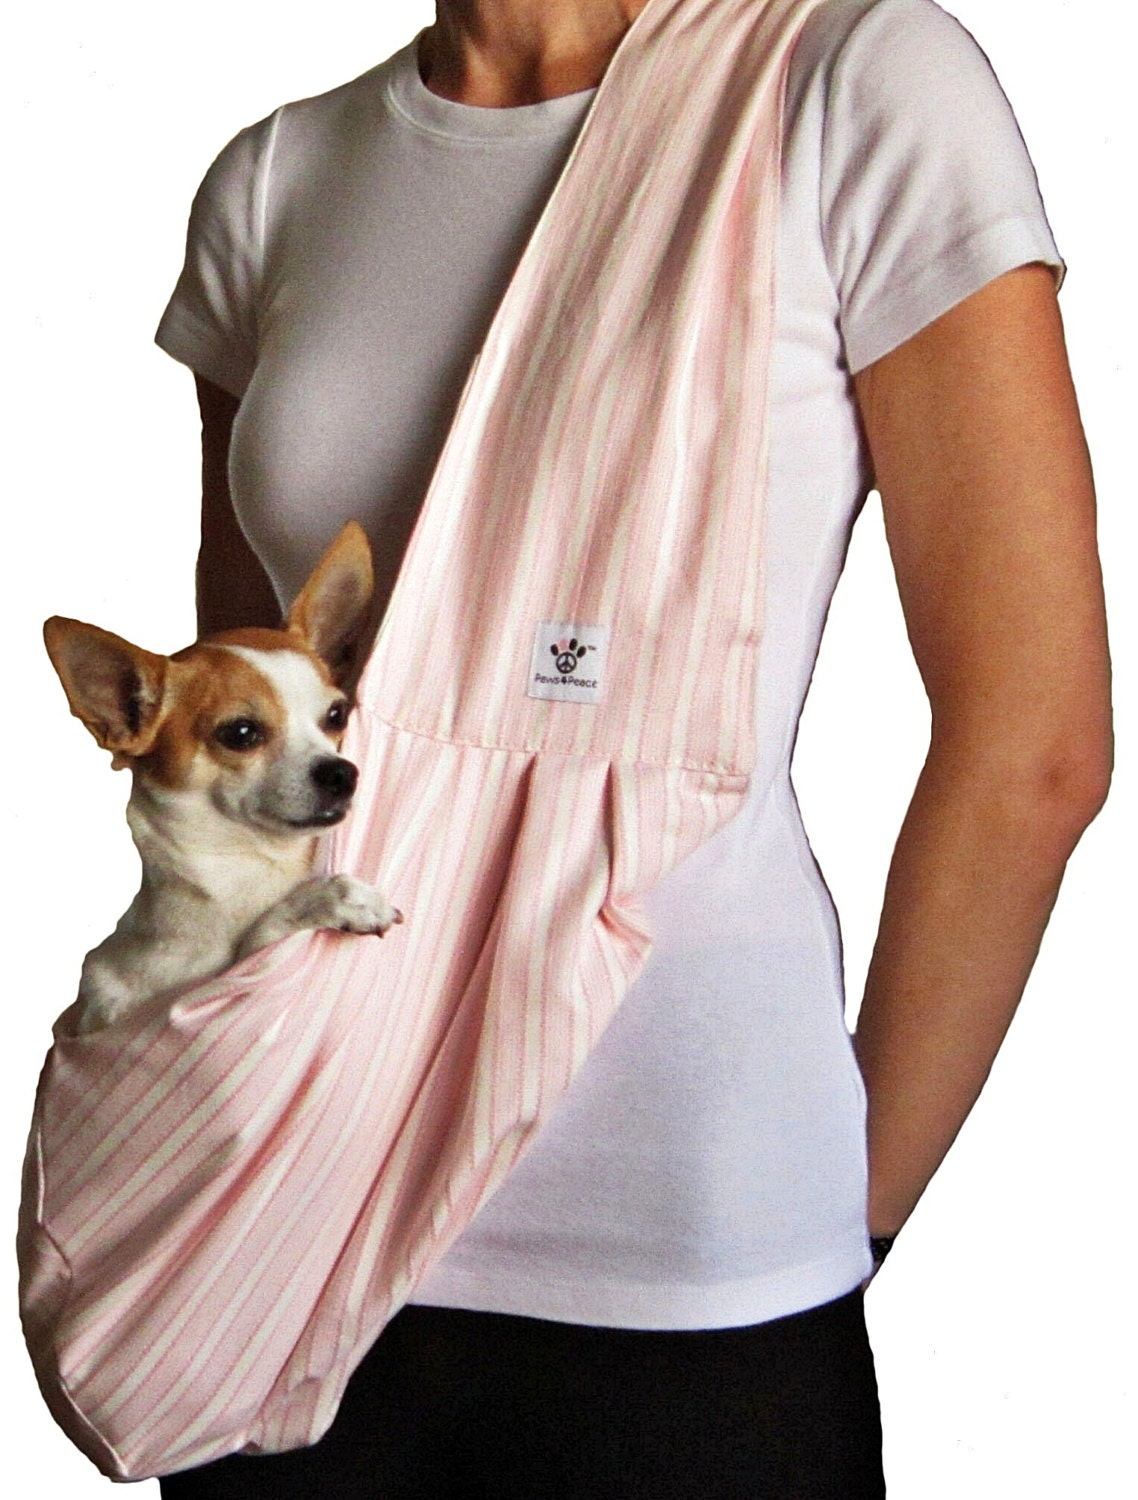 Dog sling pink and white striped by paws4peacellc on etsy - Pattern for dog carrier sling ...